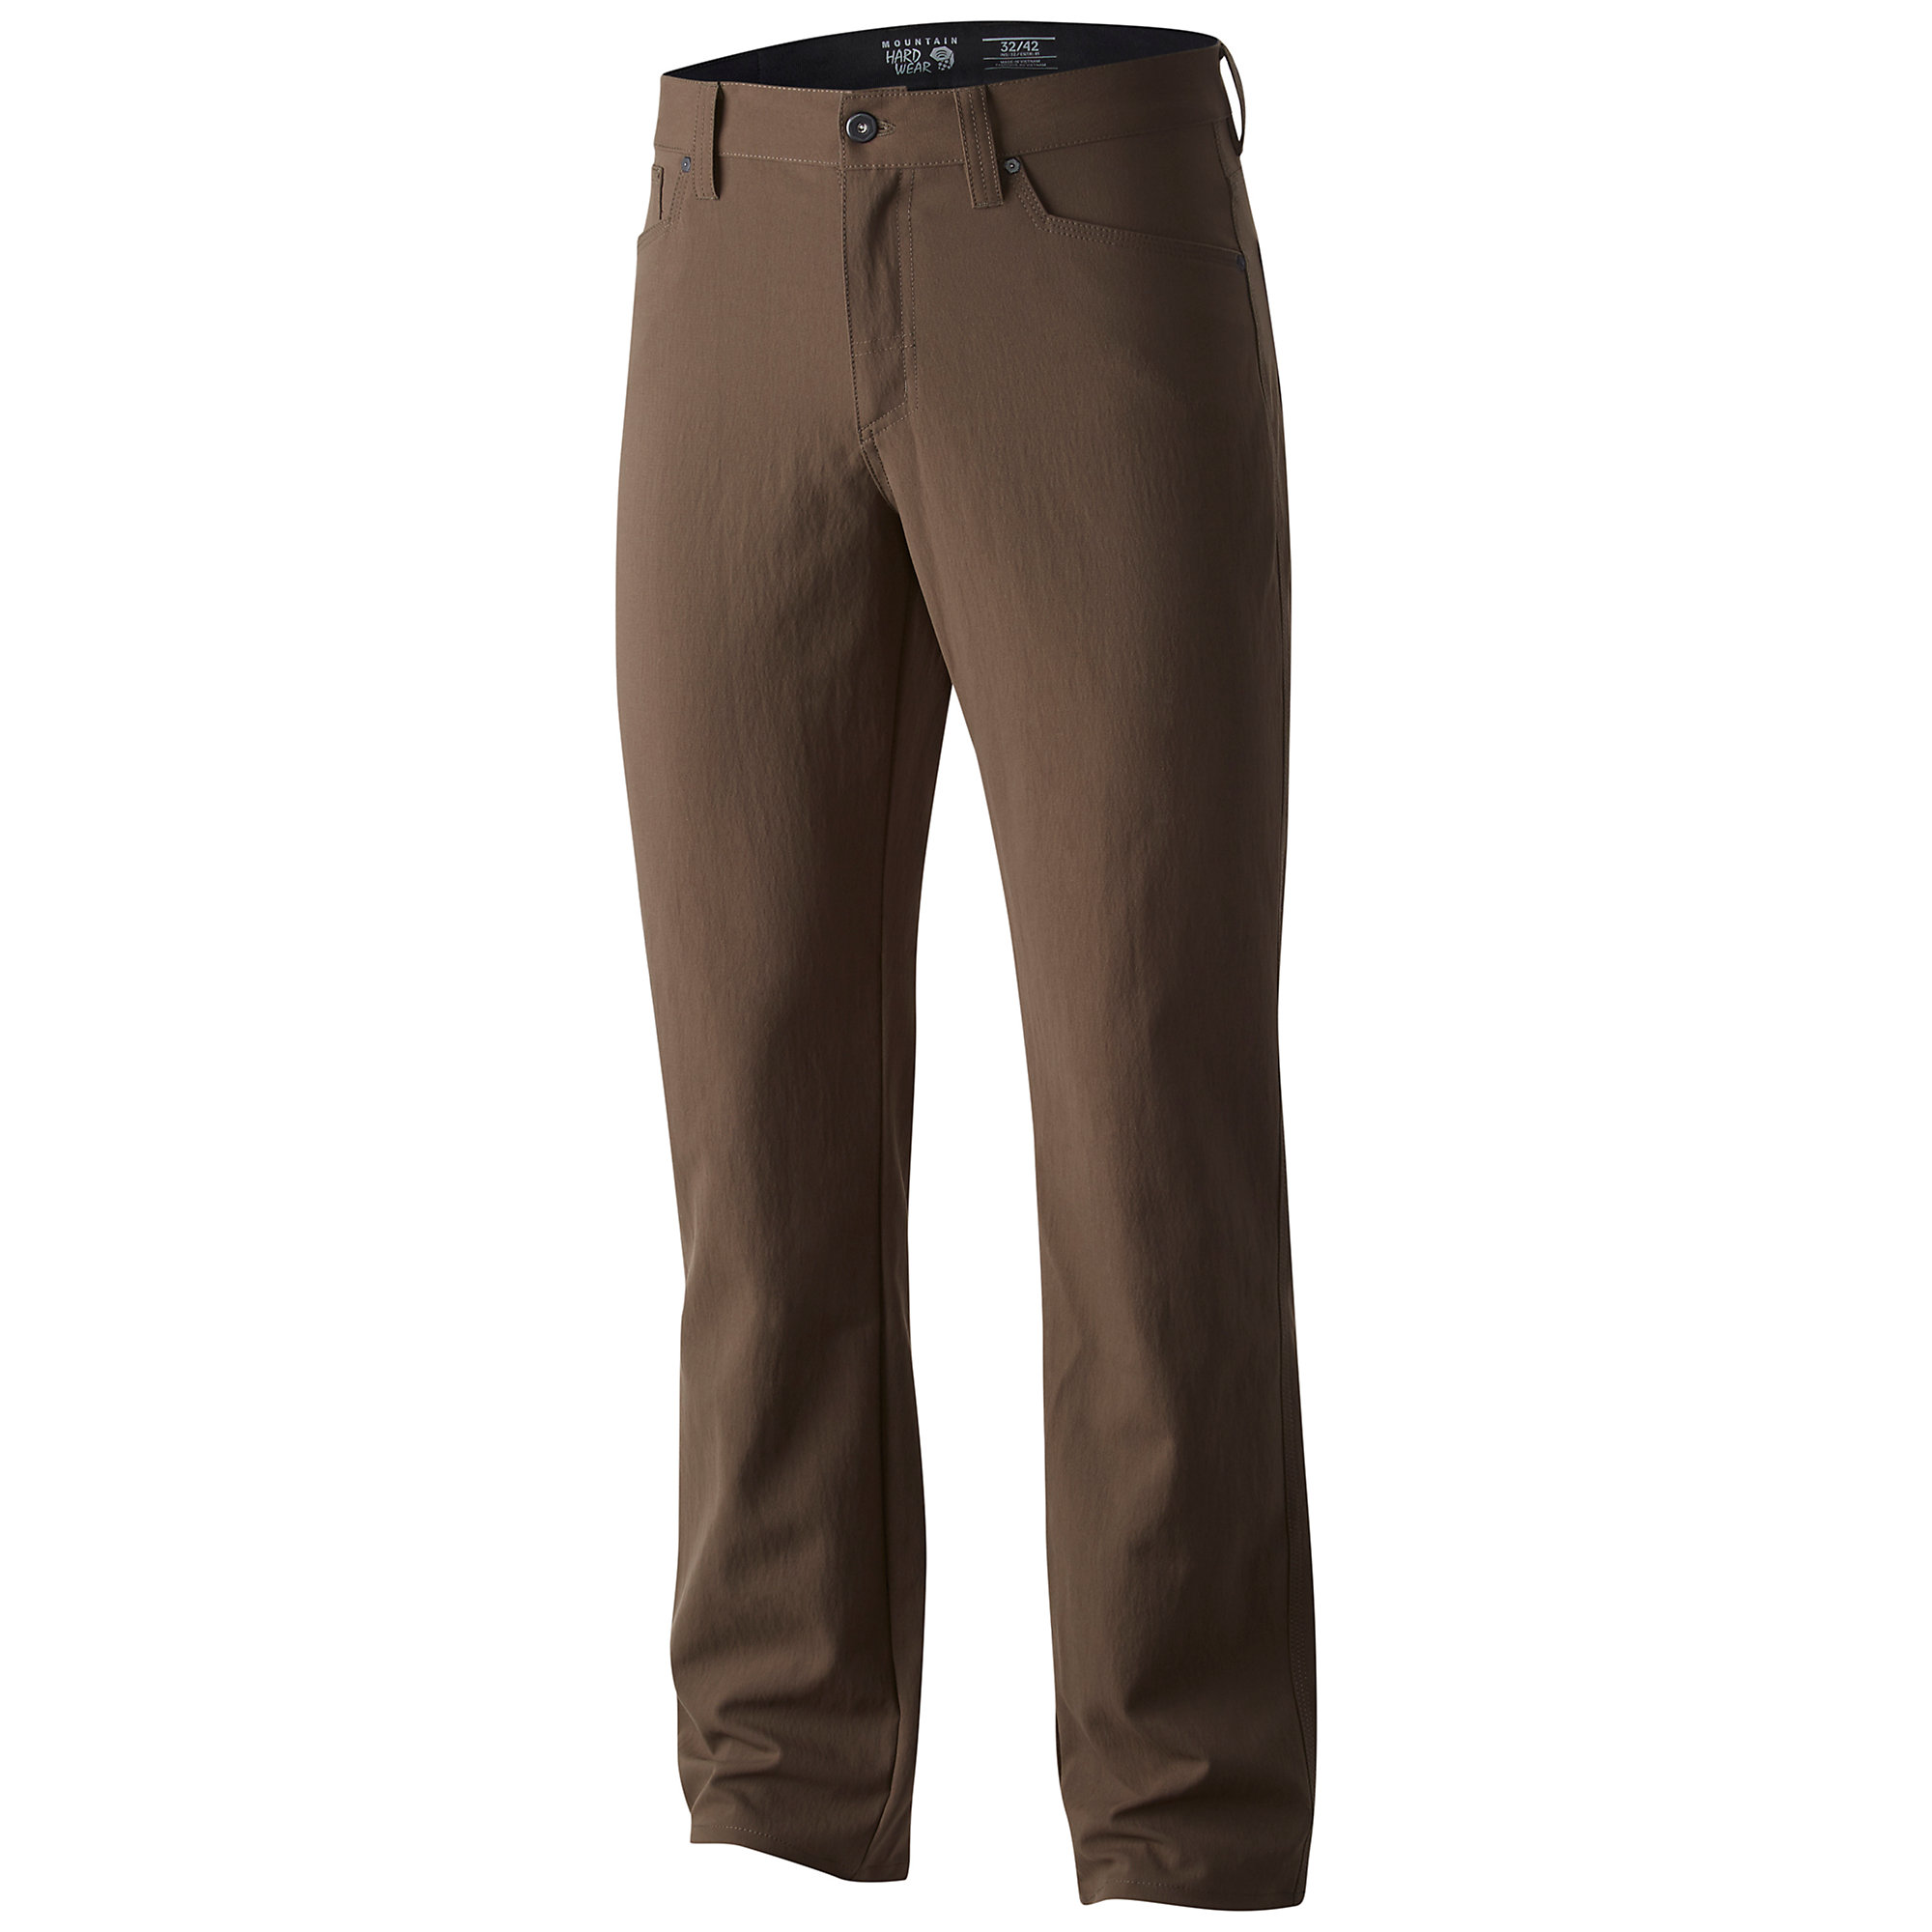 Mountain Hardwear Piero 5 Pocket Pant